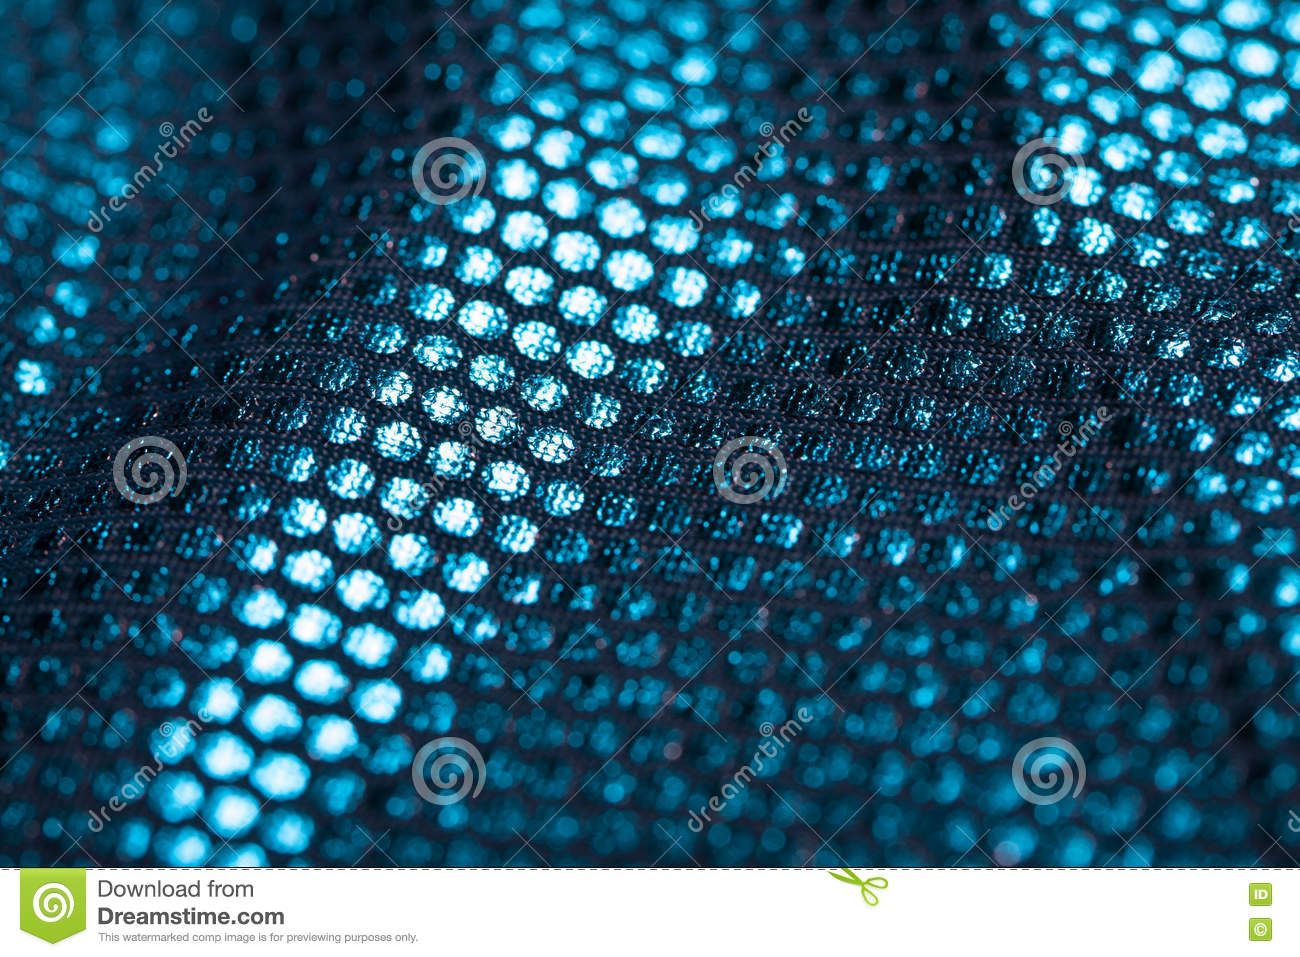 Close-up fabric. covered with reflective dots that give the image its glitter.